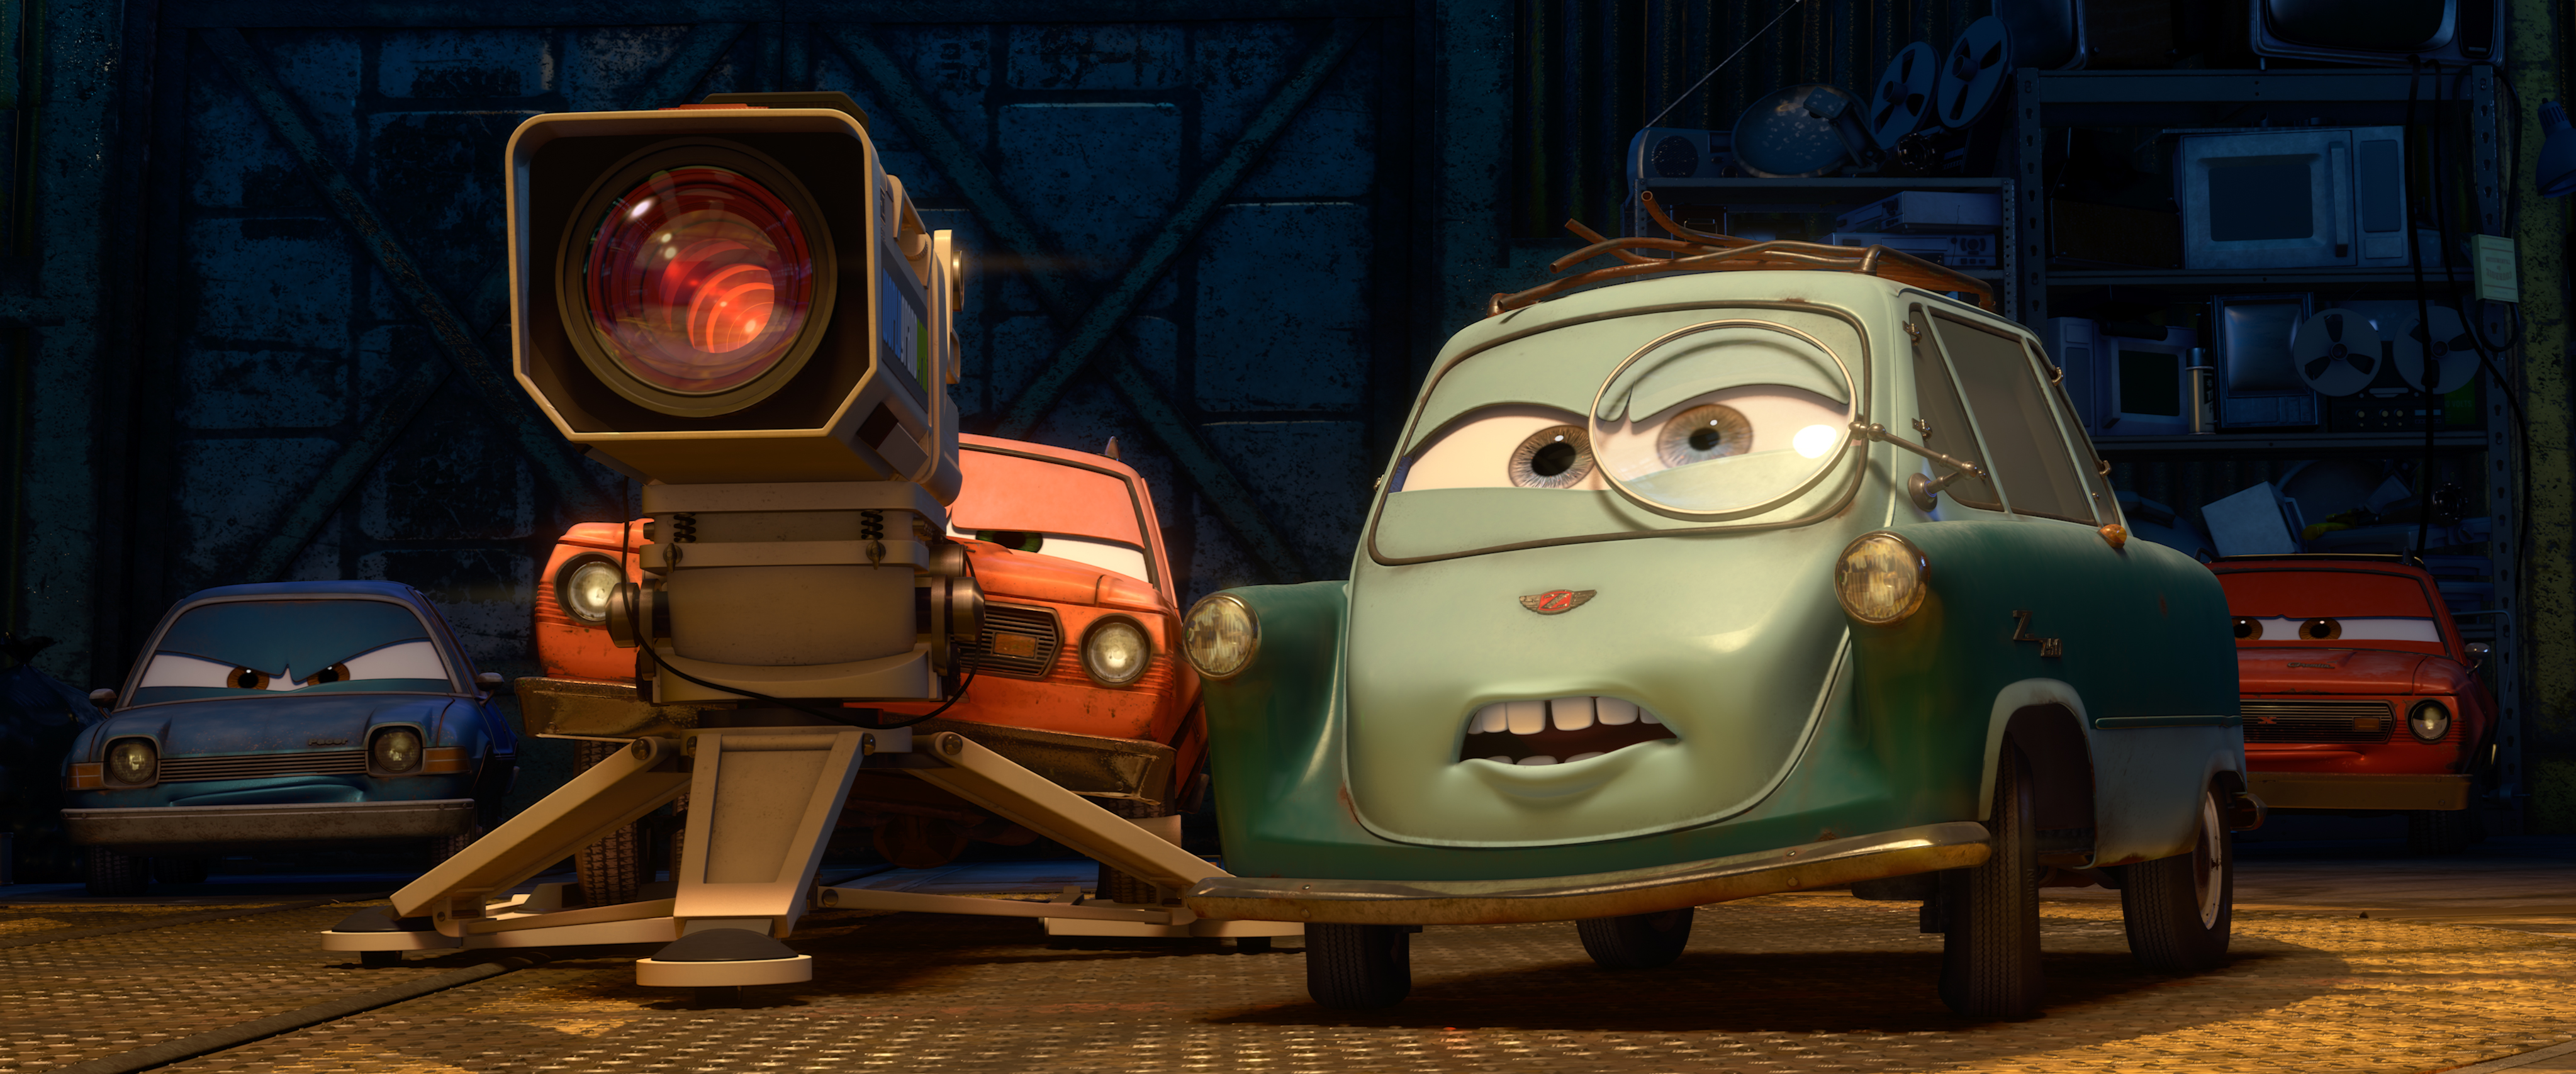 New Cars 2 Ad Parodies Popular TV Shows, New Clip Released